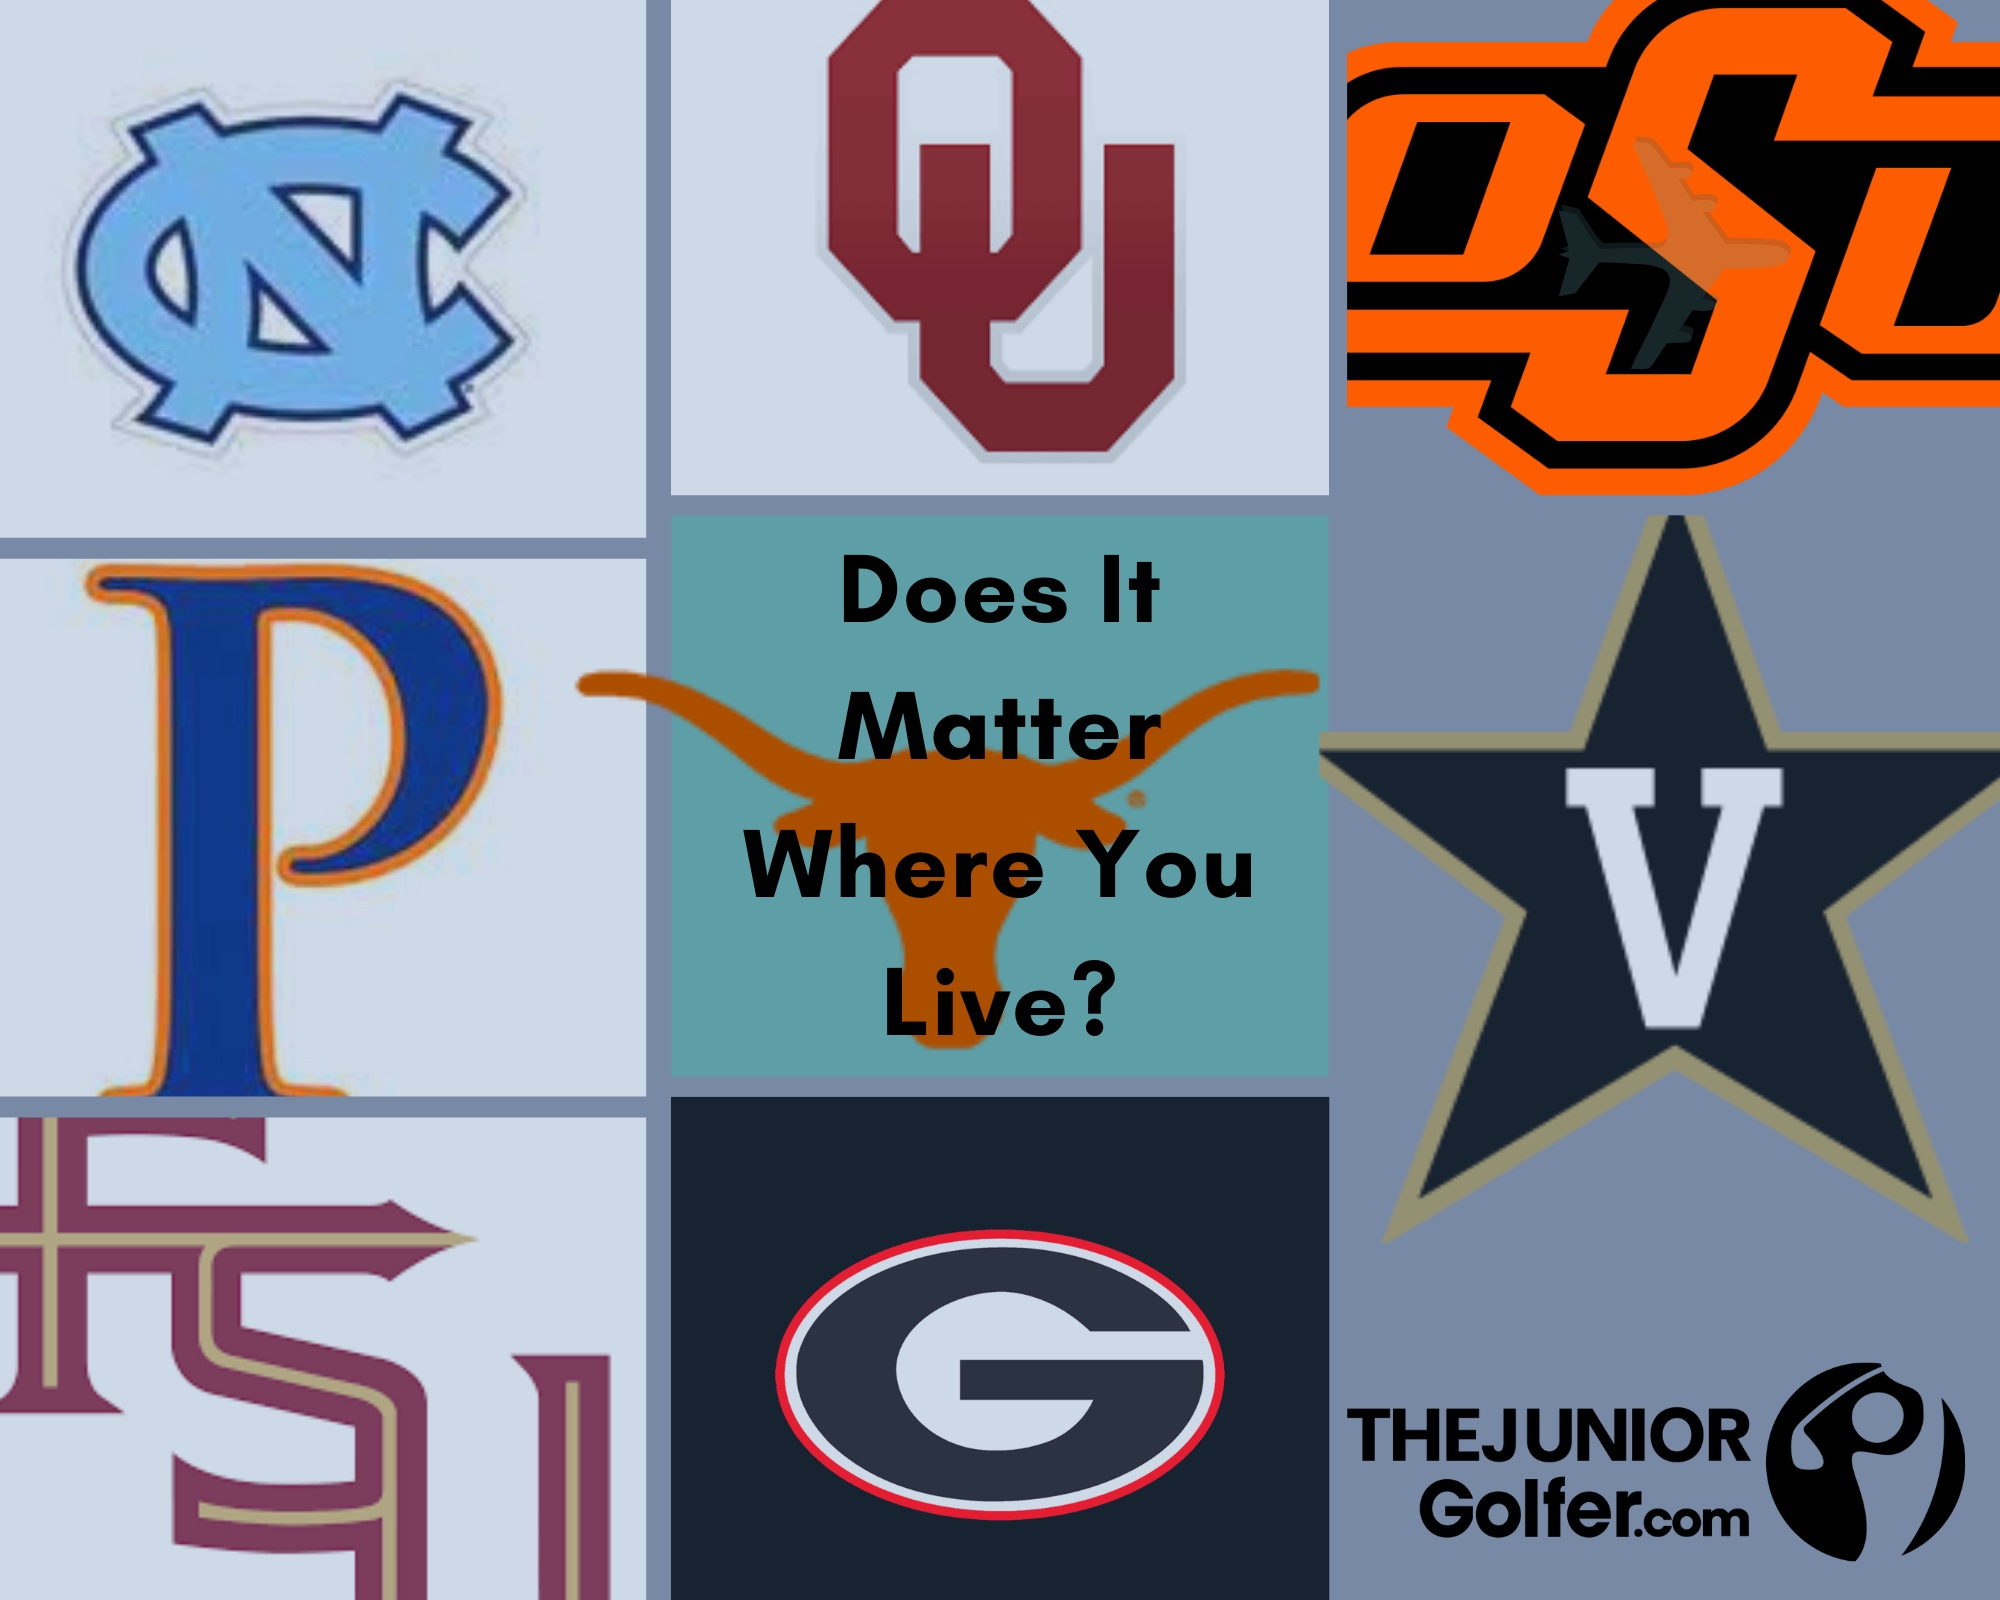 does it matter where you live